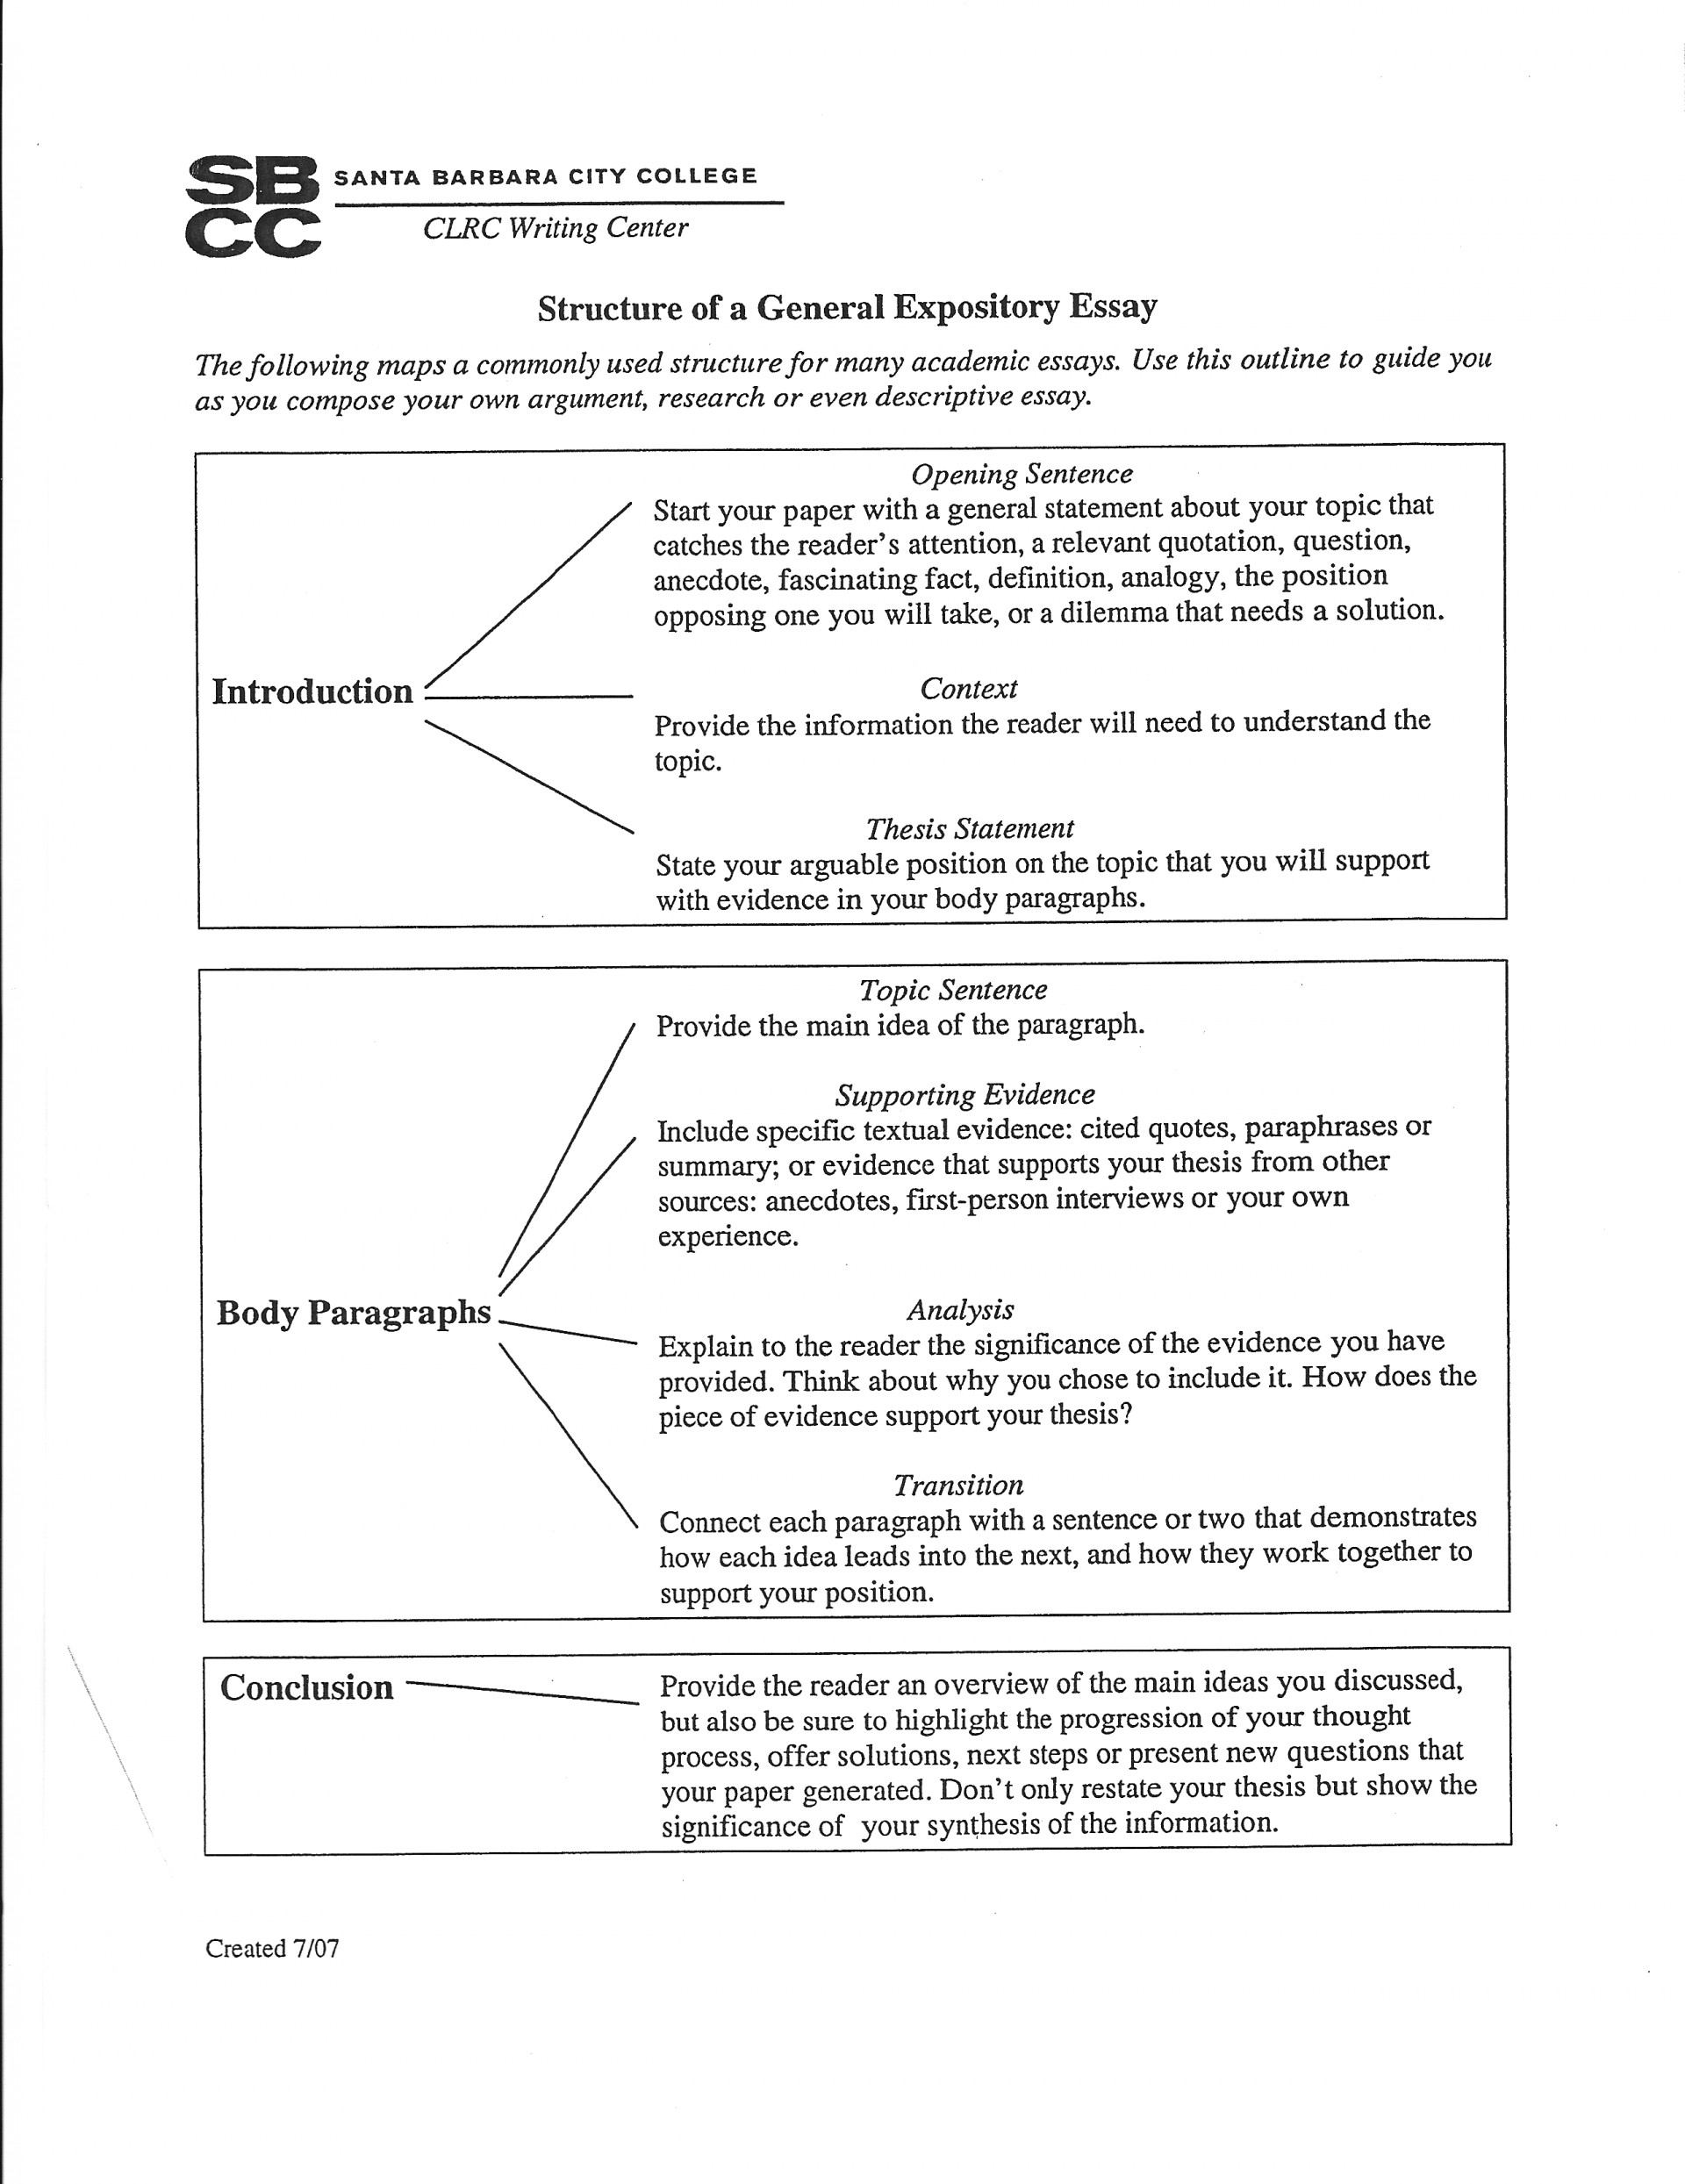 006 Informative Essay Dreaded Outline Template Pdf Topics For 5th Grade Rubric Fsa 1920